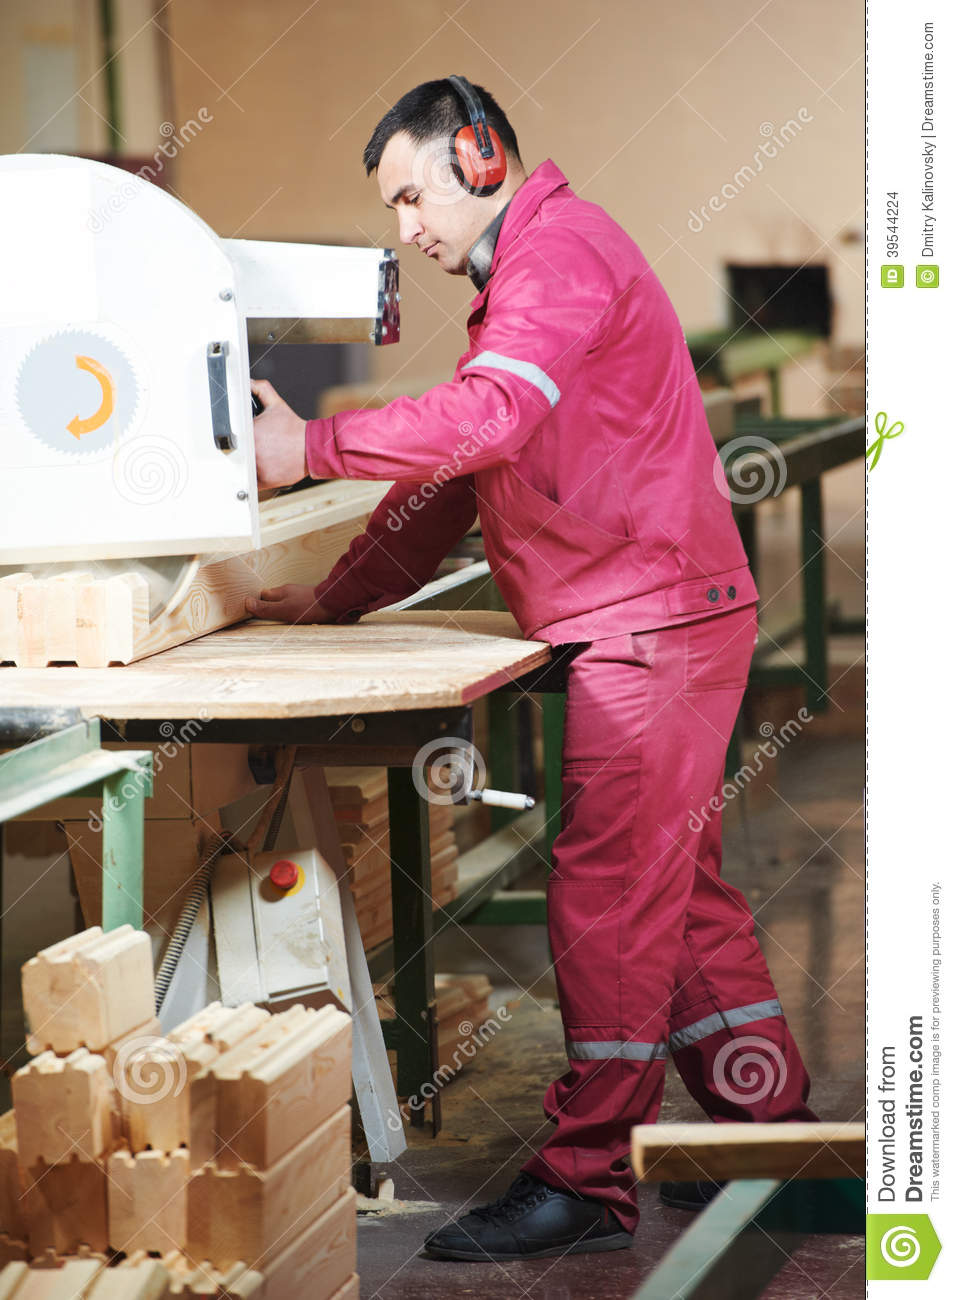 Carpentry Carpenter Woodworker Woodworking Wooden: Woodworking Of Beam At Factory Stock Photo